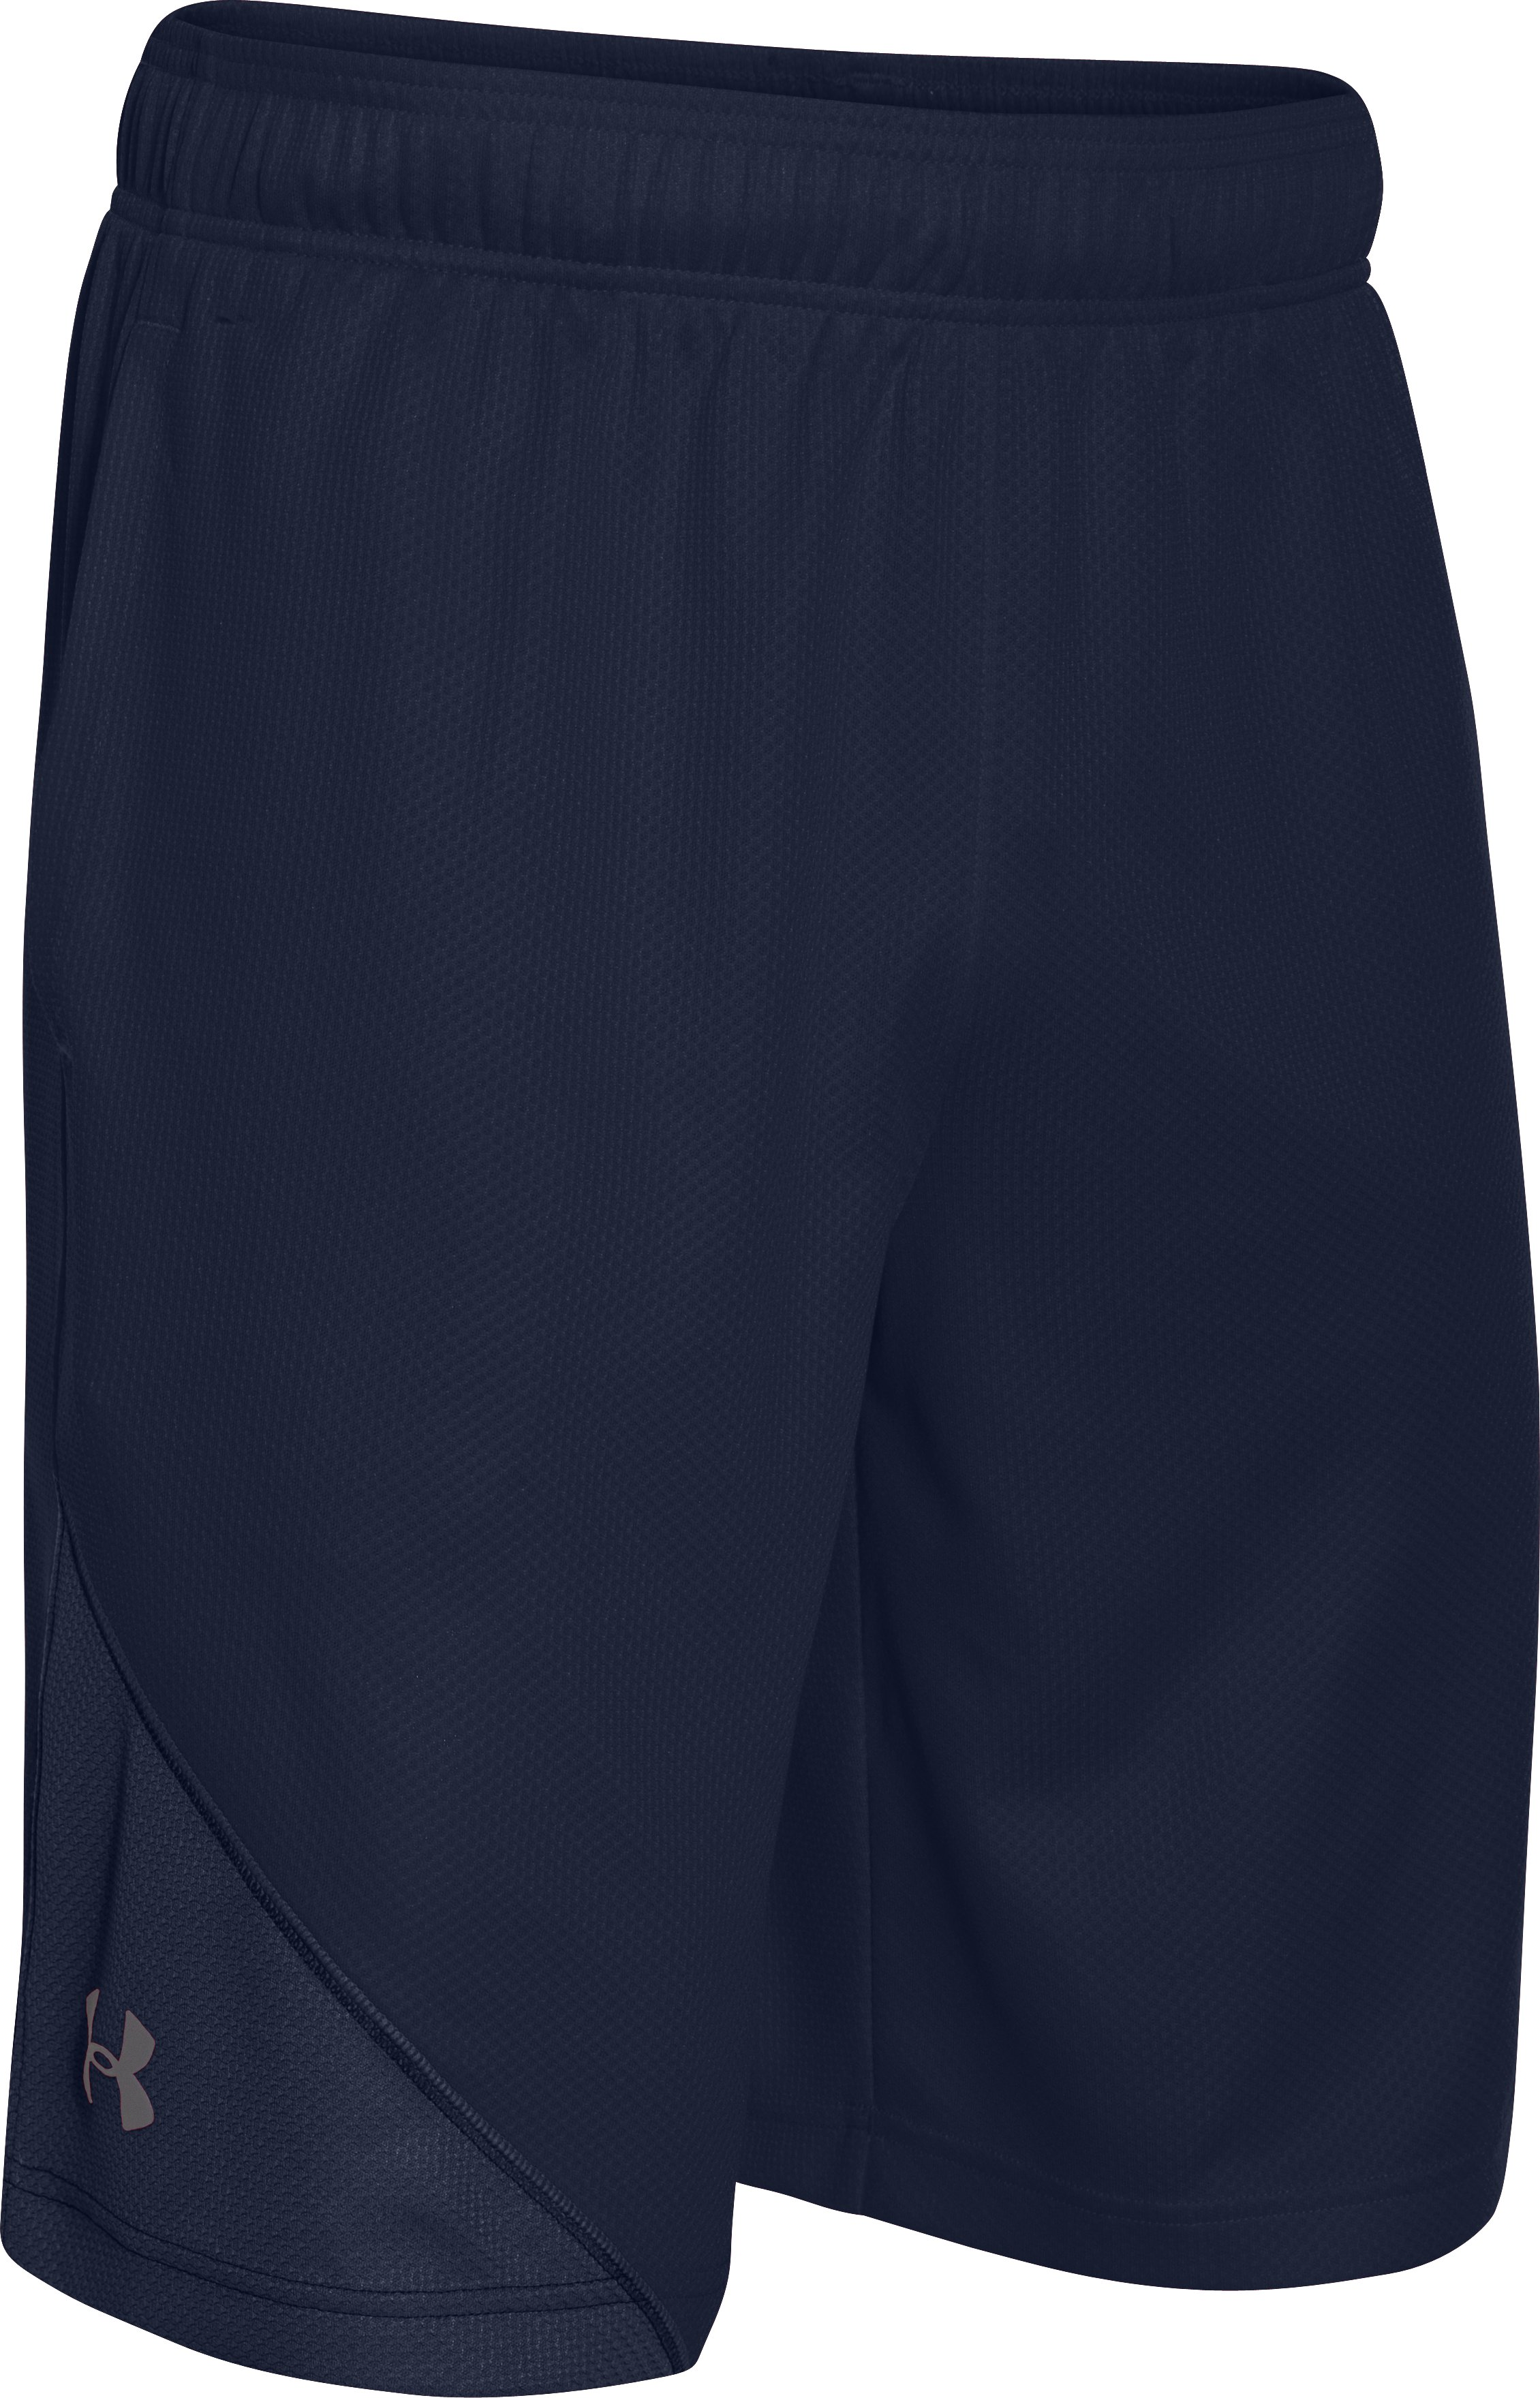 Men's UA Quarter Shorts, Midnight Navy